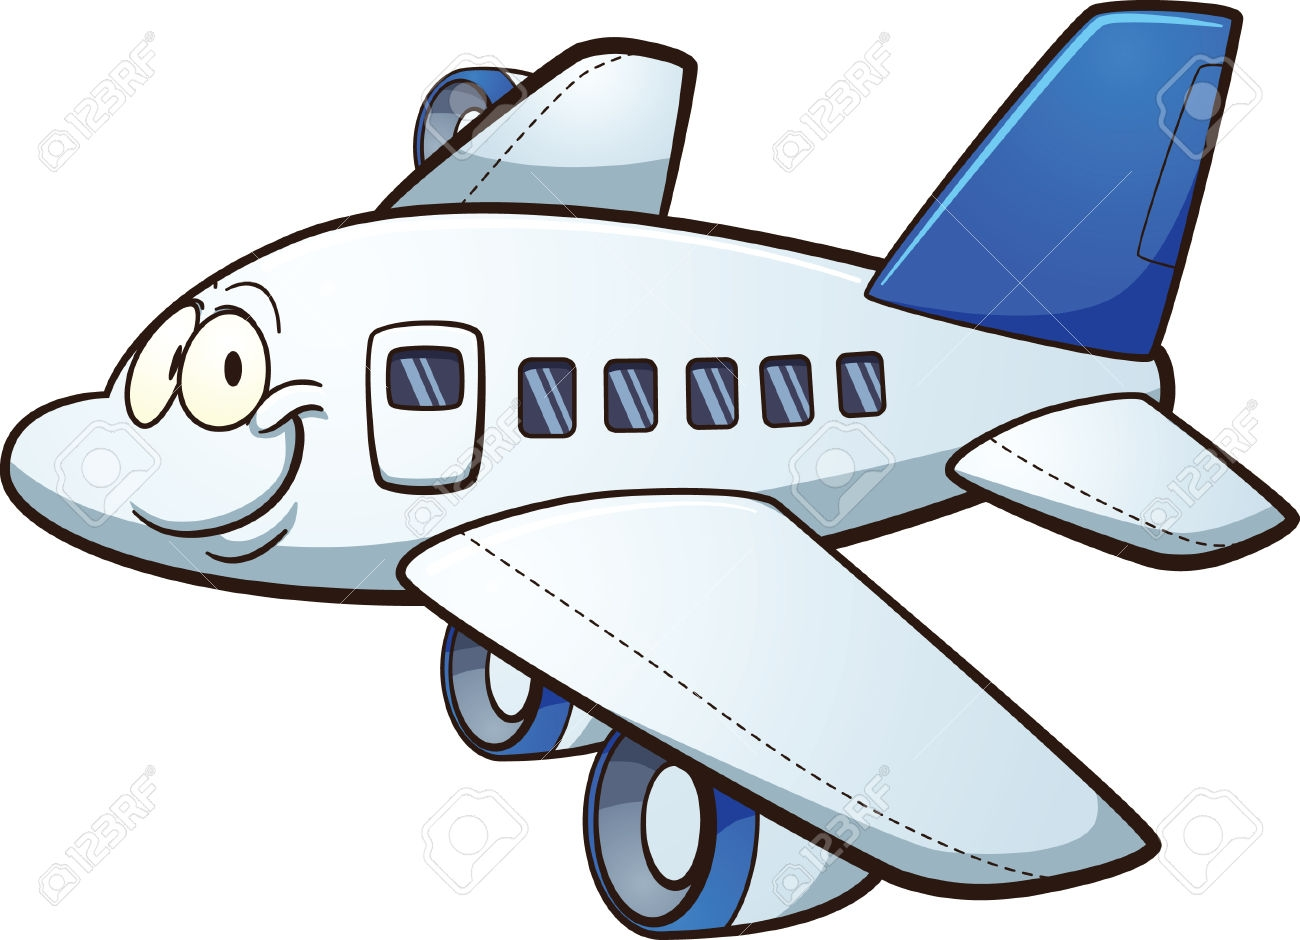 hight resolution of 1300x940 aviation clipart animated